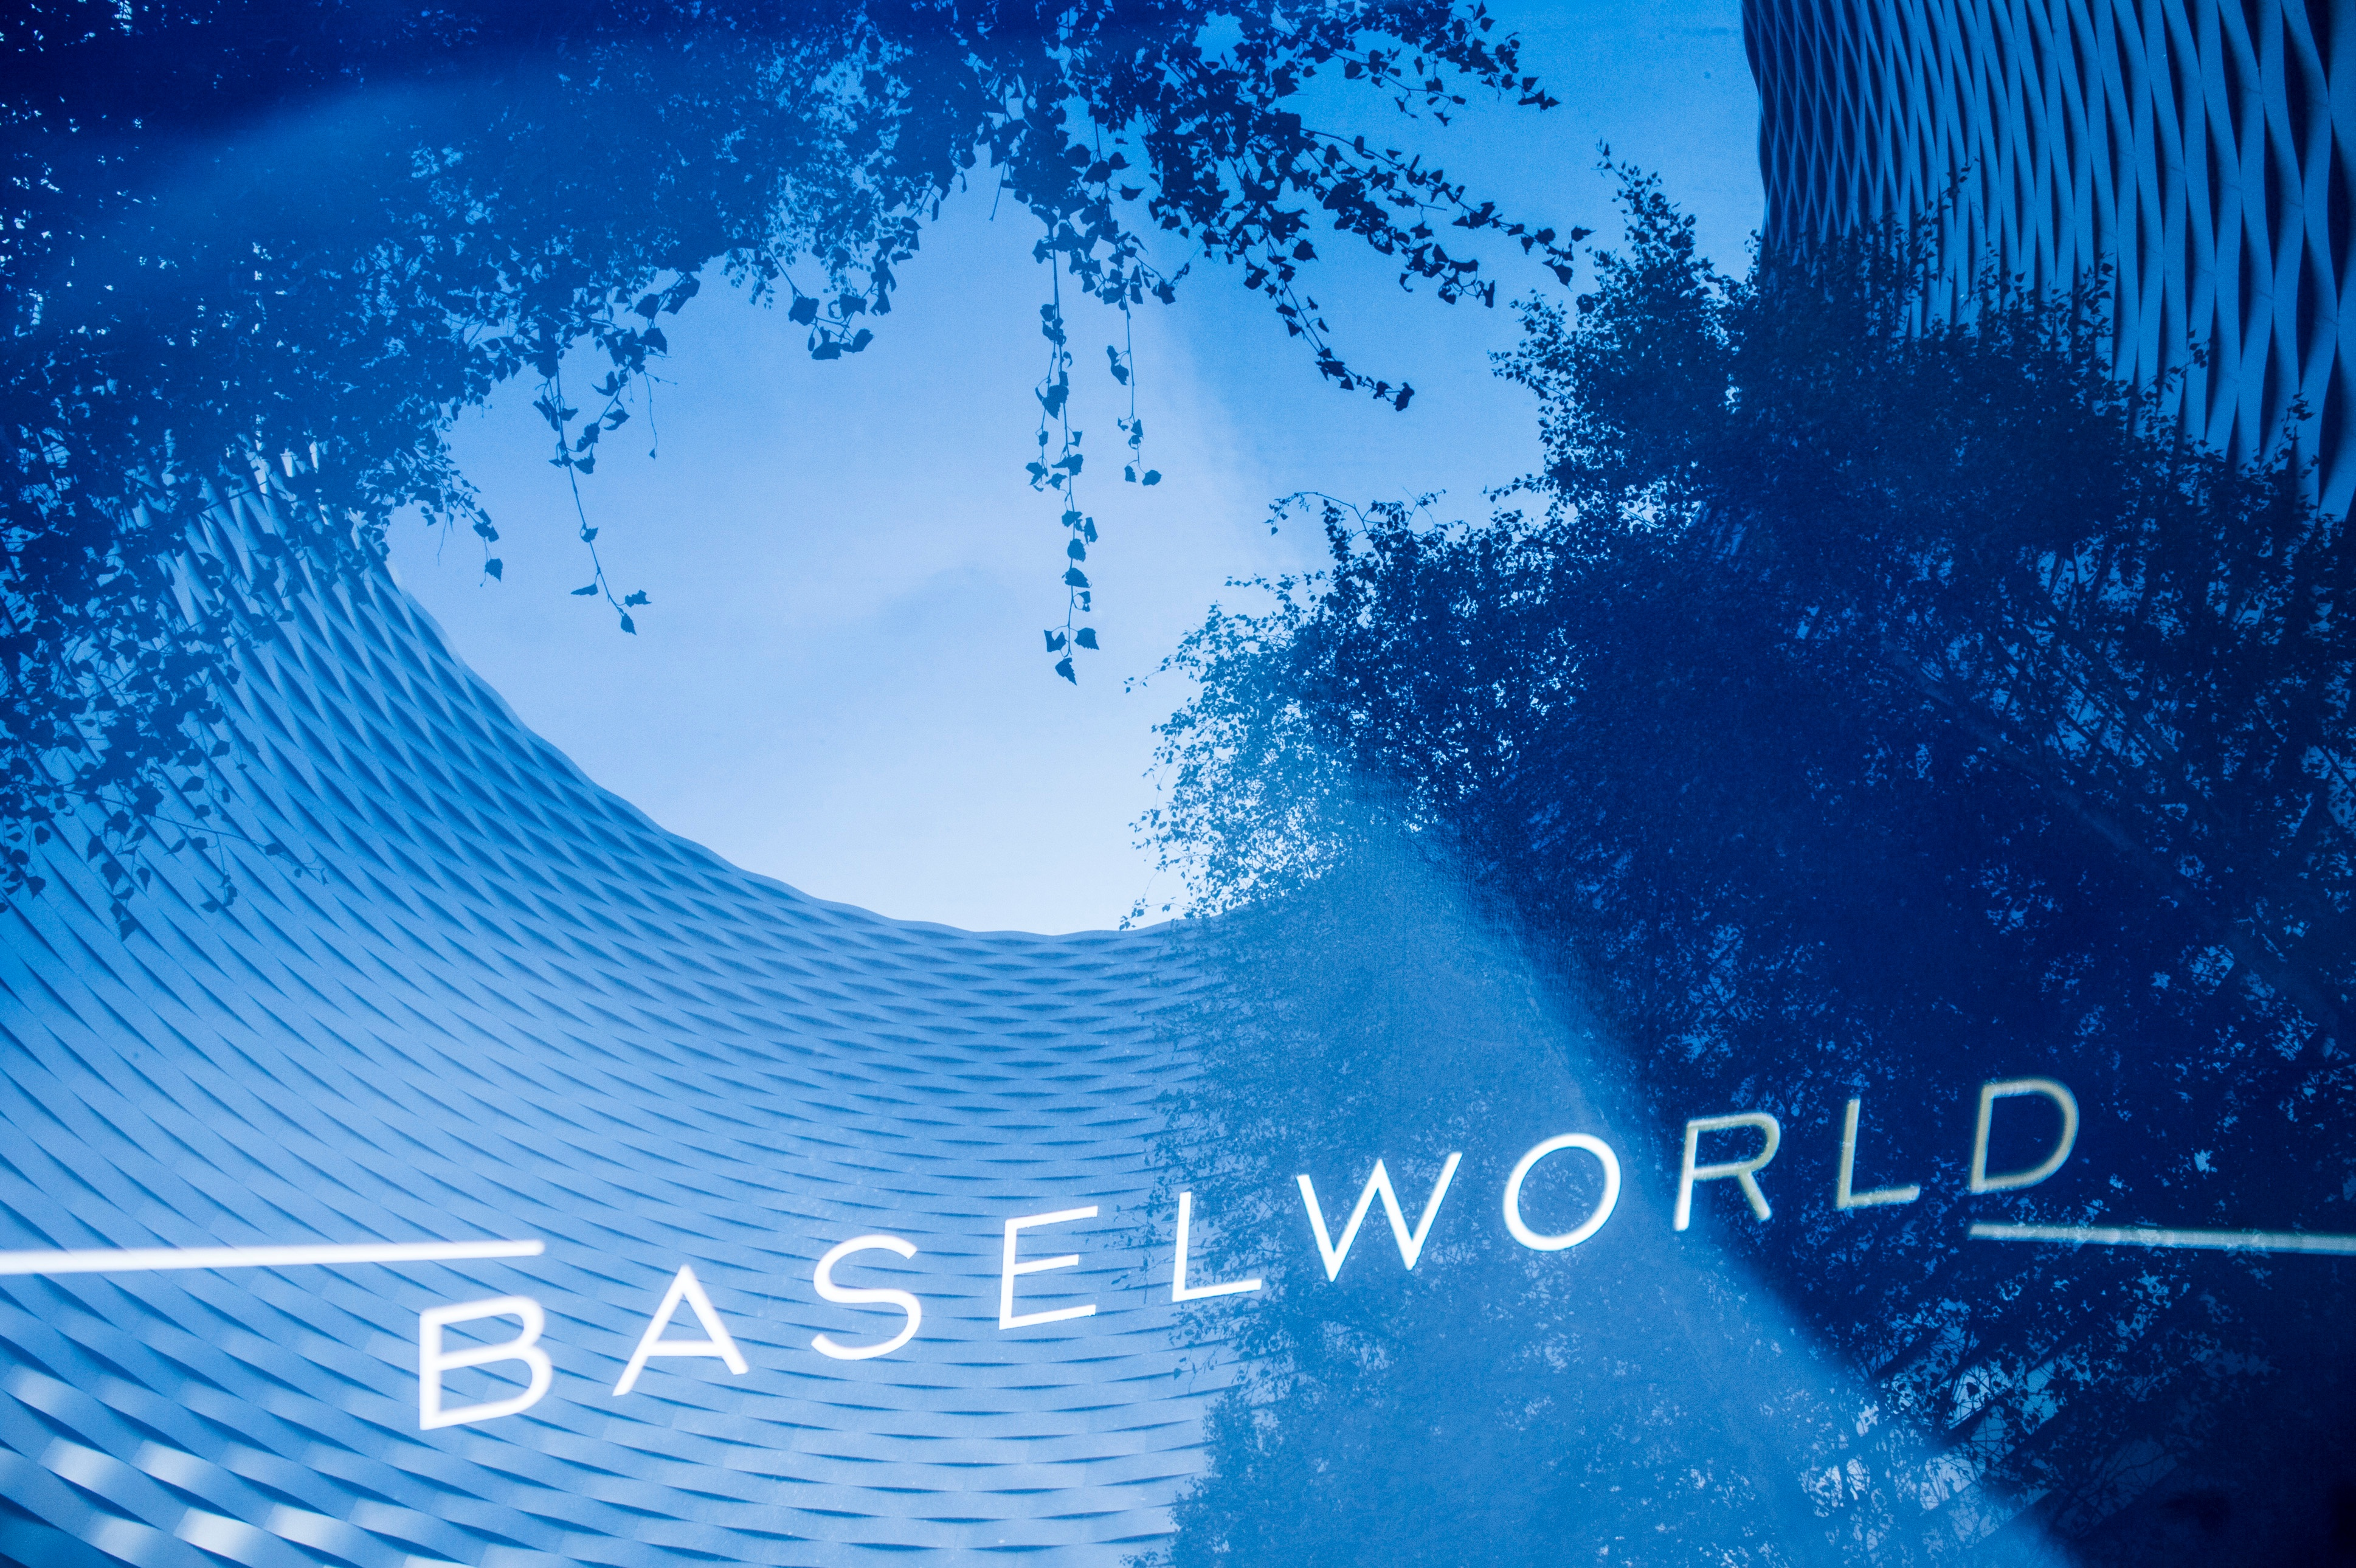 Baselworld-2018-Preview